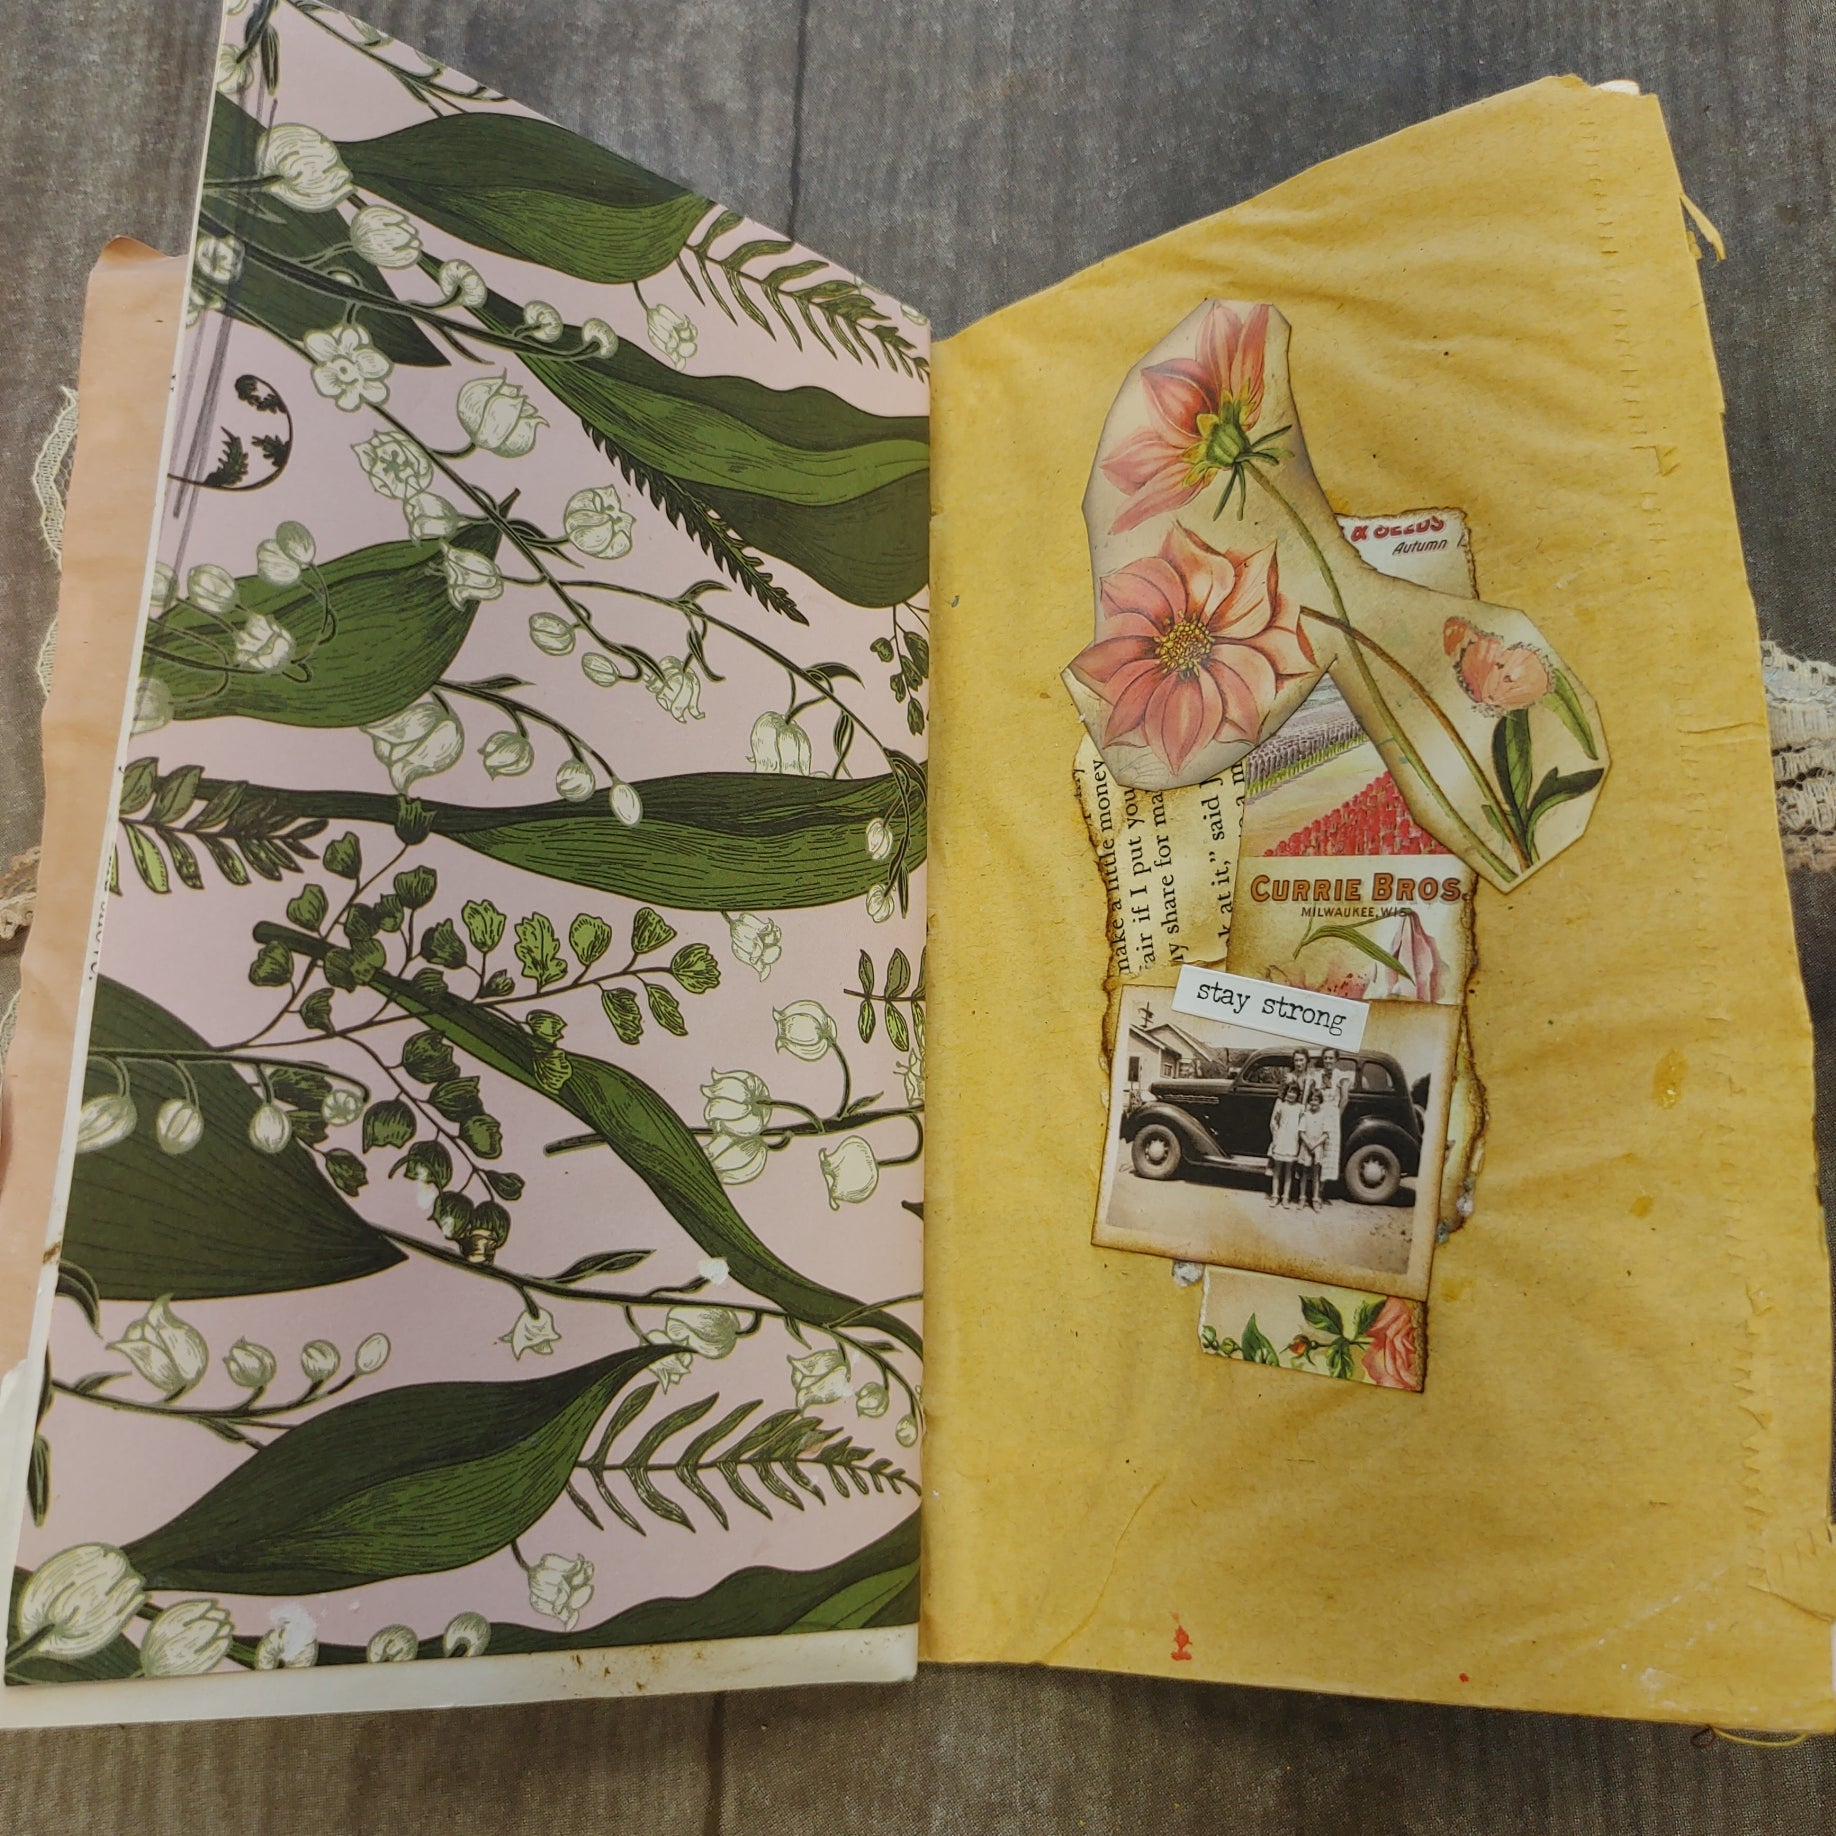 Set of 2 Green Butterfly Junk Journal Notebooks by Sandy Loar